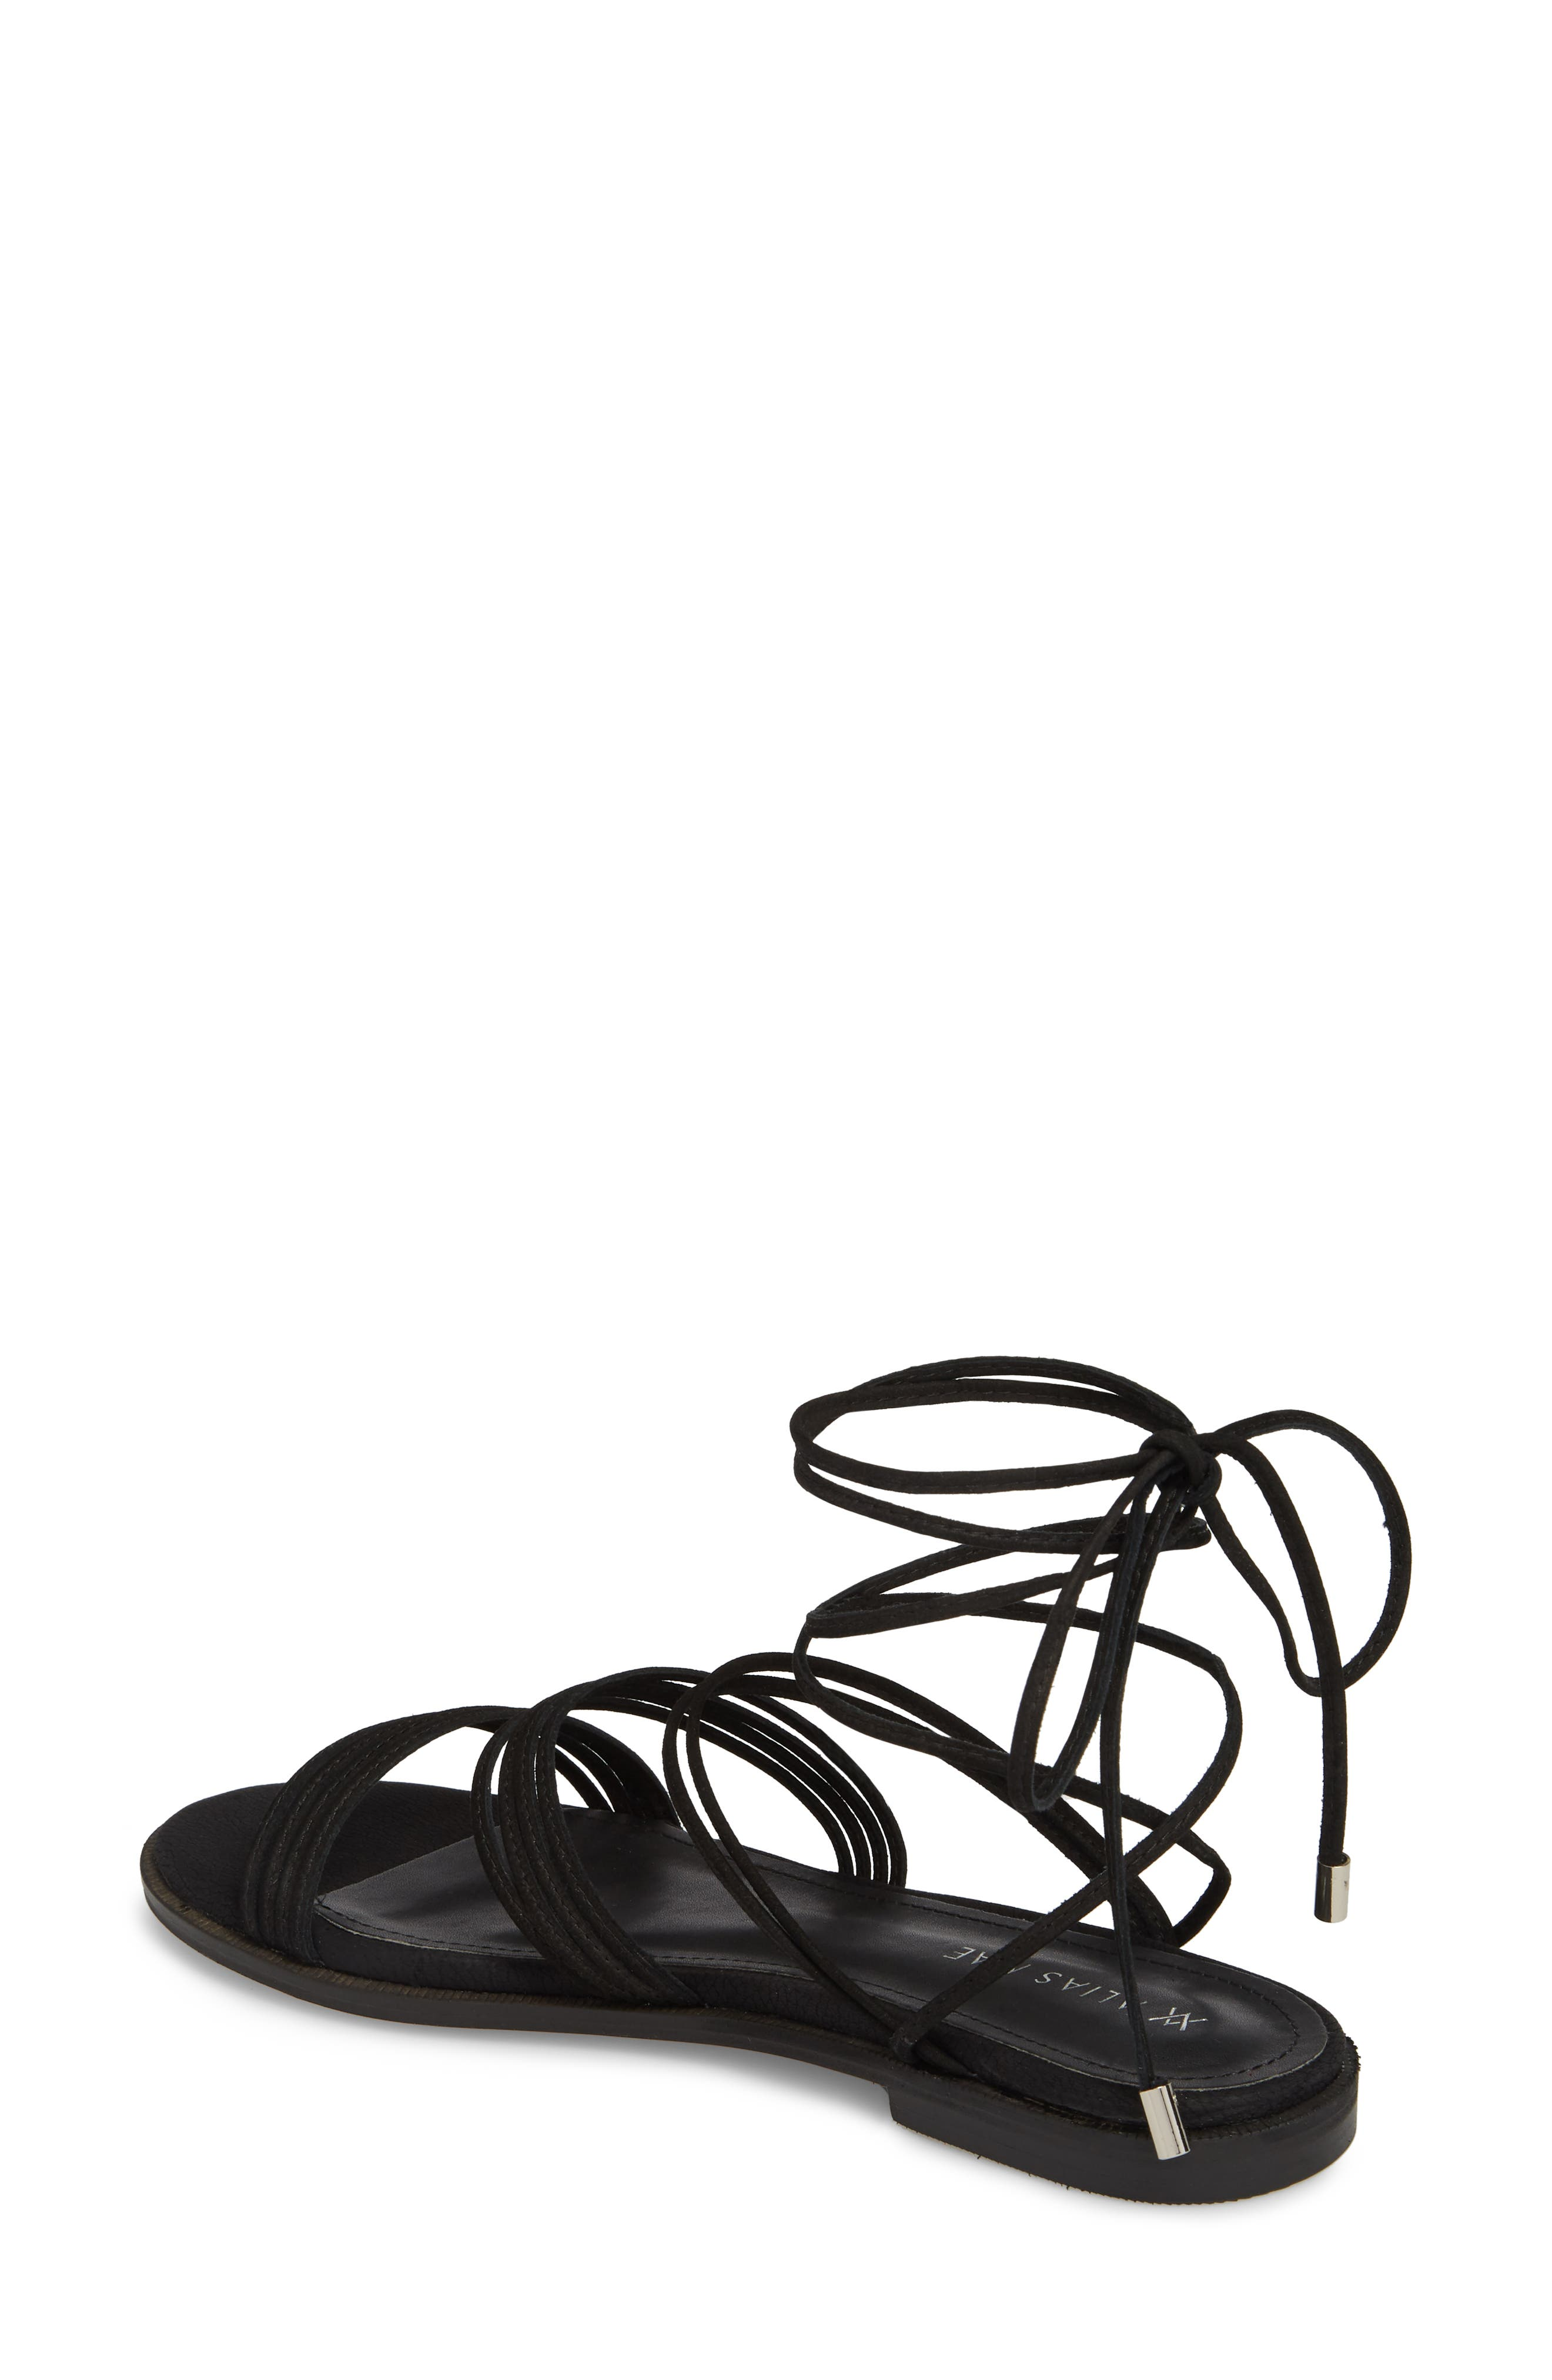 Theory Strappy Flat Sandal,                             Alternate thumbnail 4, color,